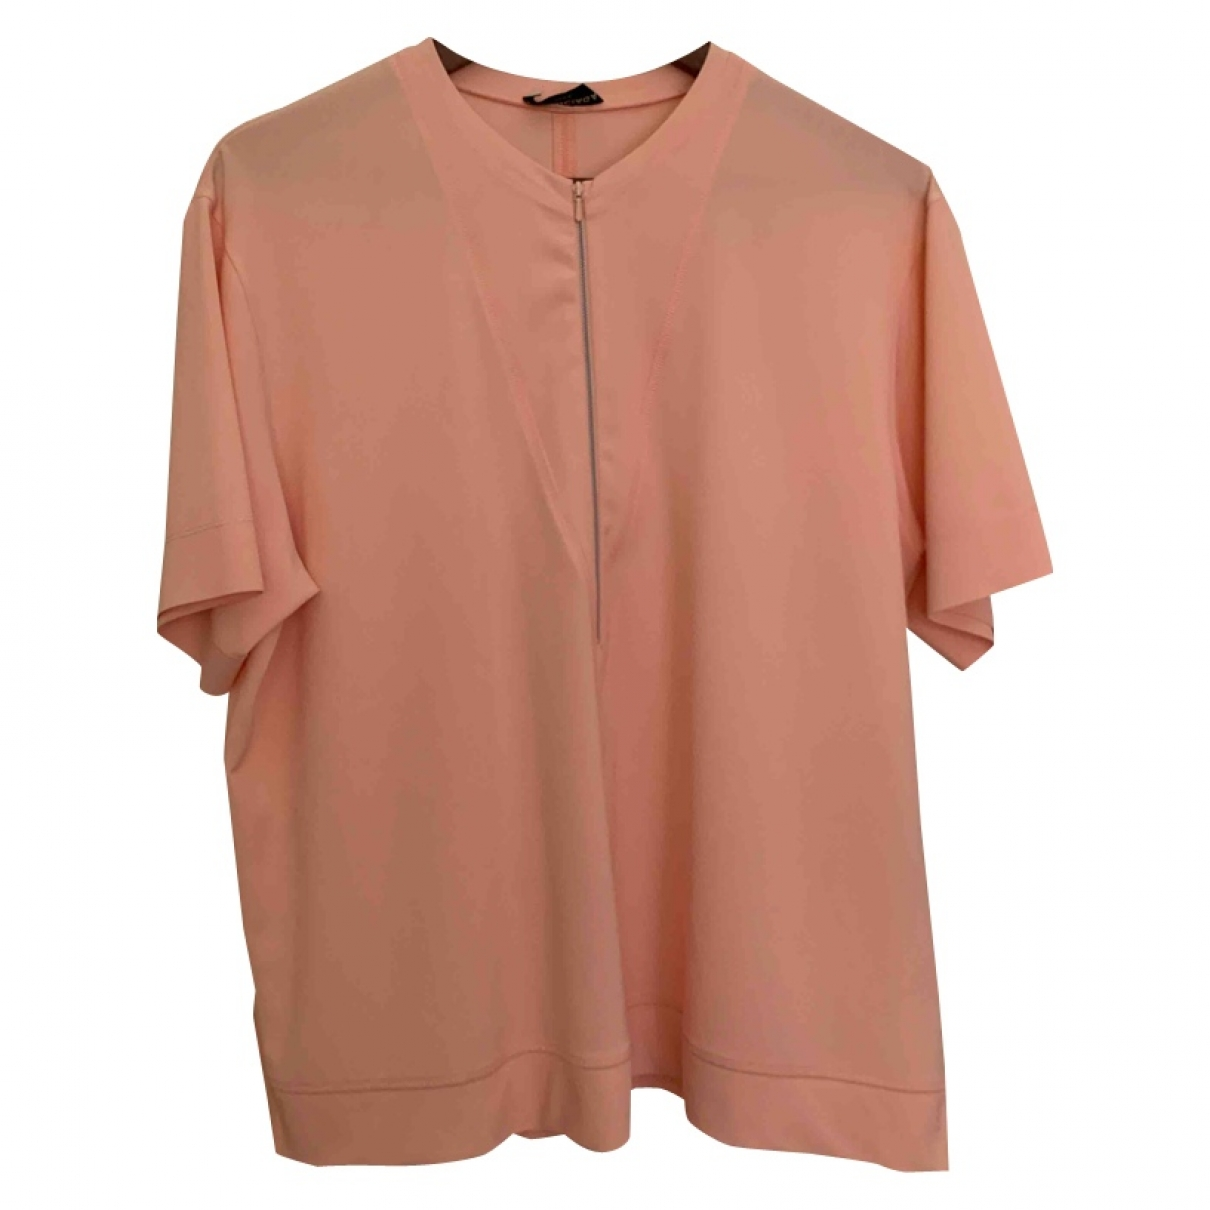 Balenciaga \N Pink  top for Women M International